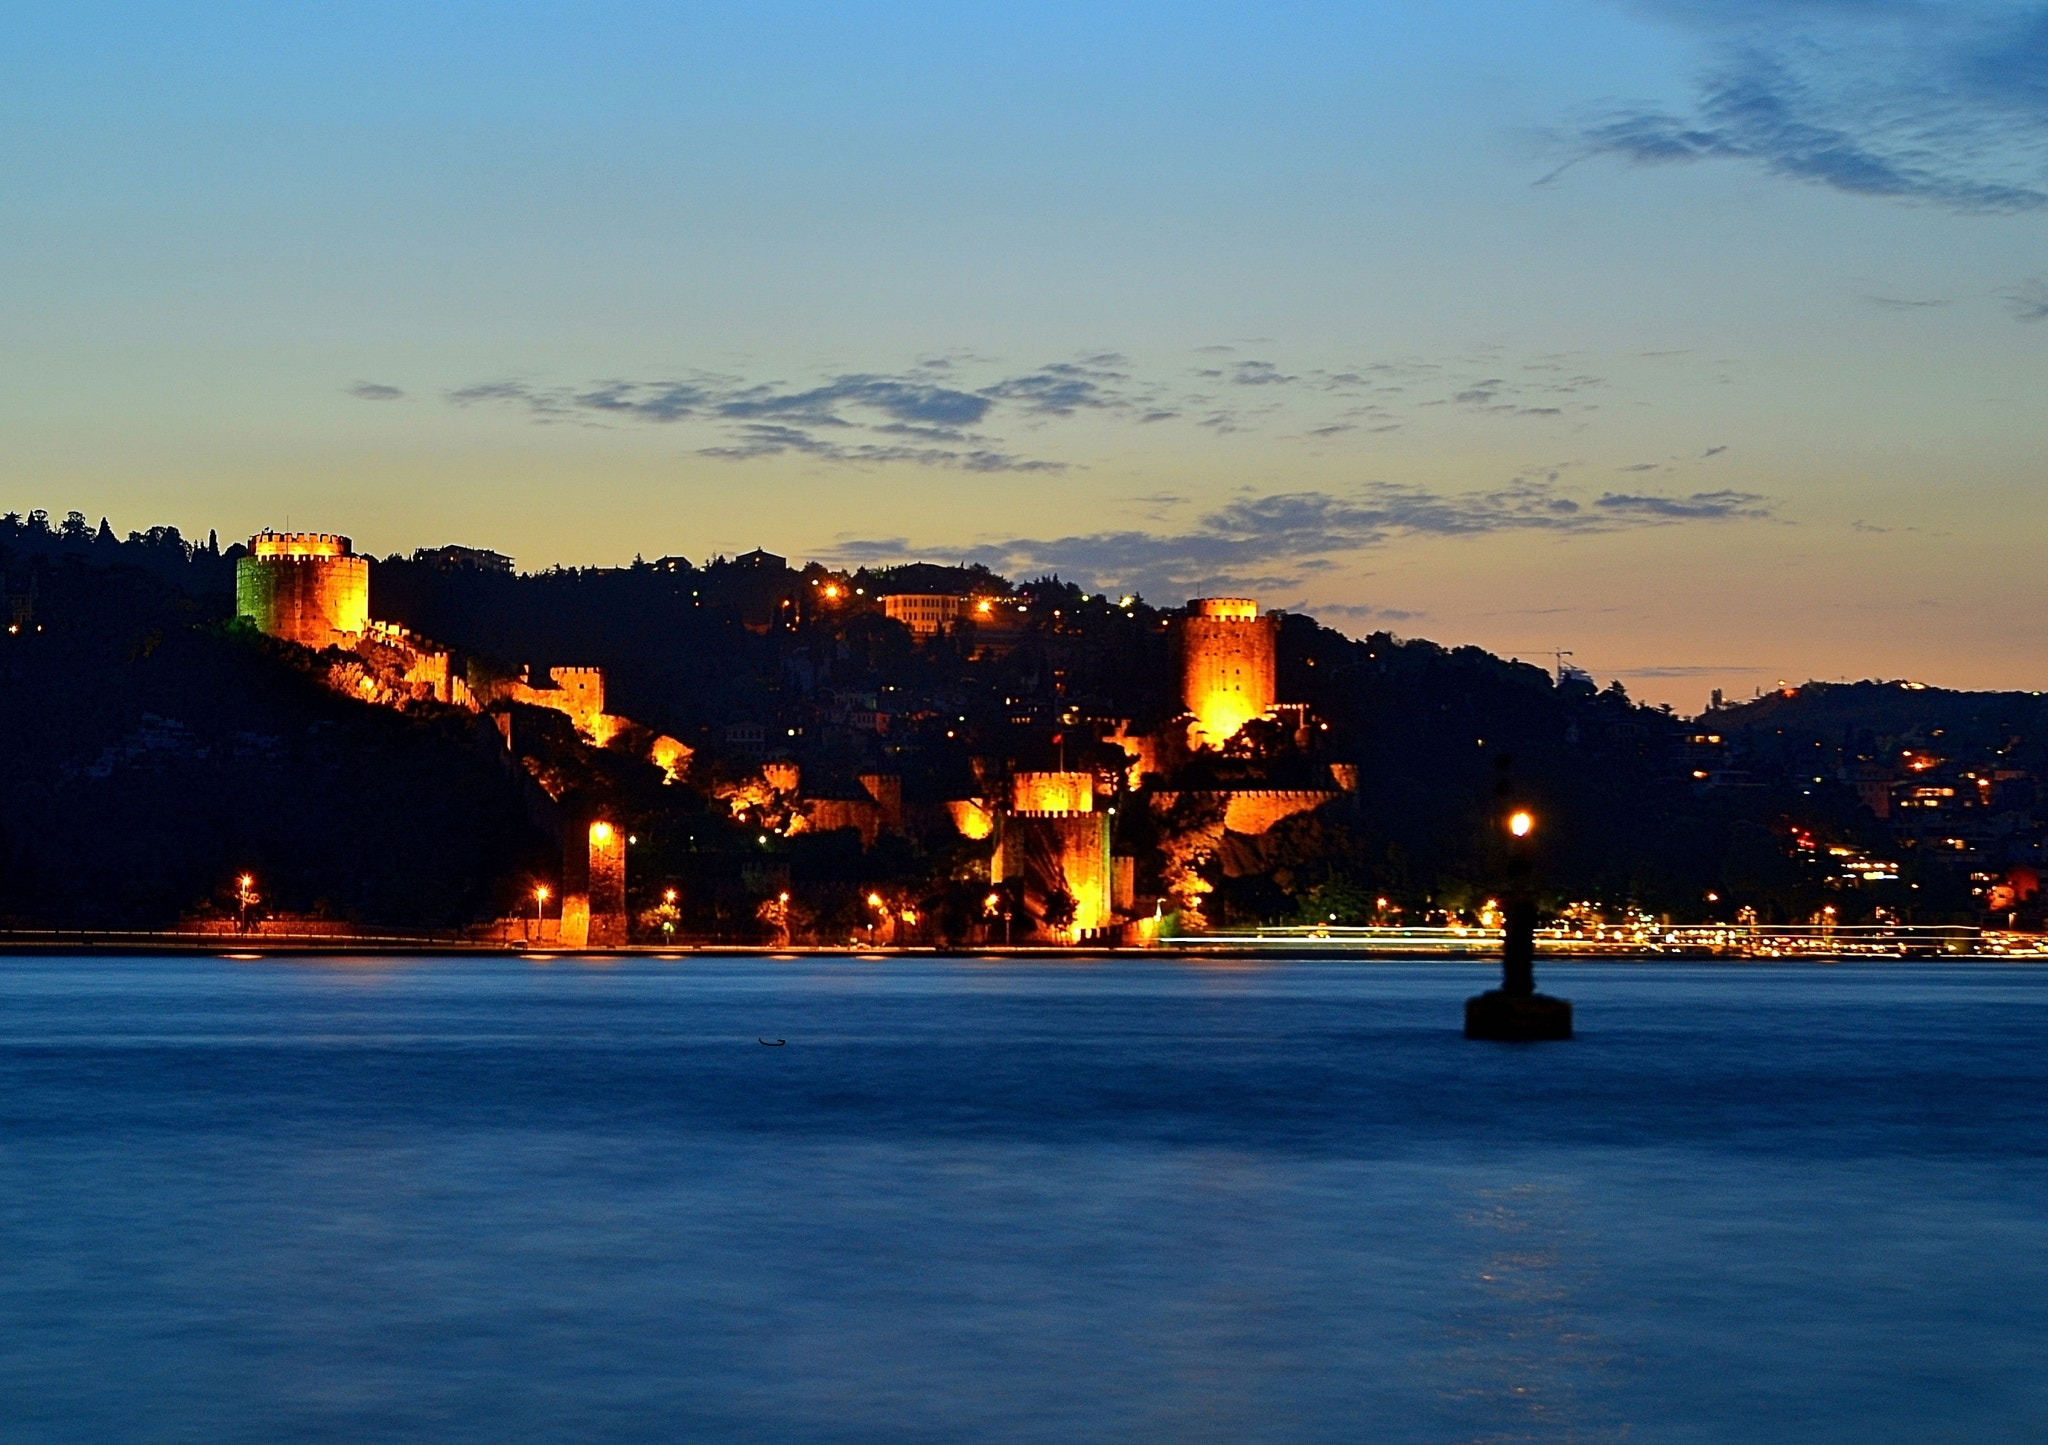 Photograph Rumeli Fortress by Zeynep Ugurdag on 500px